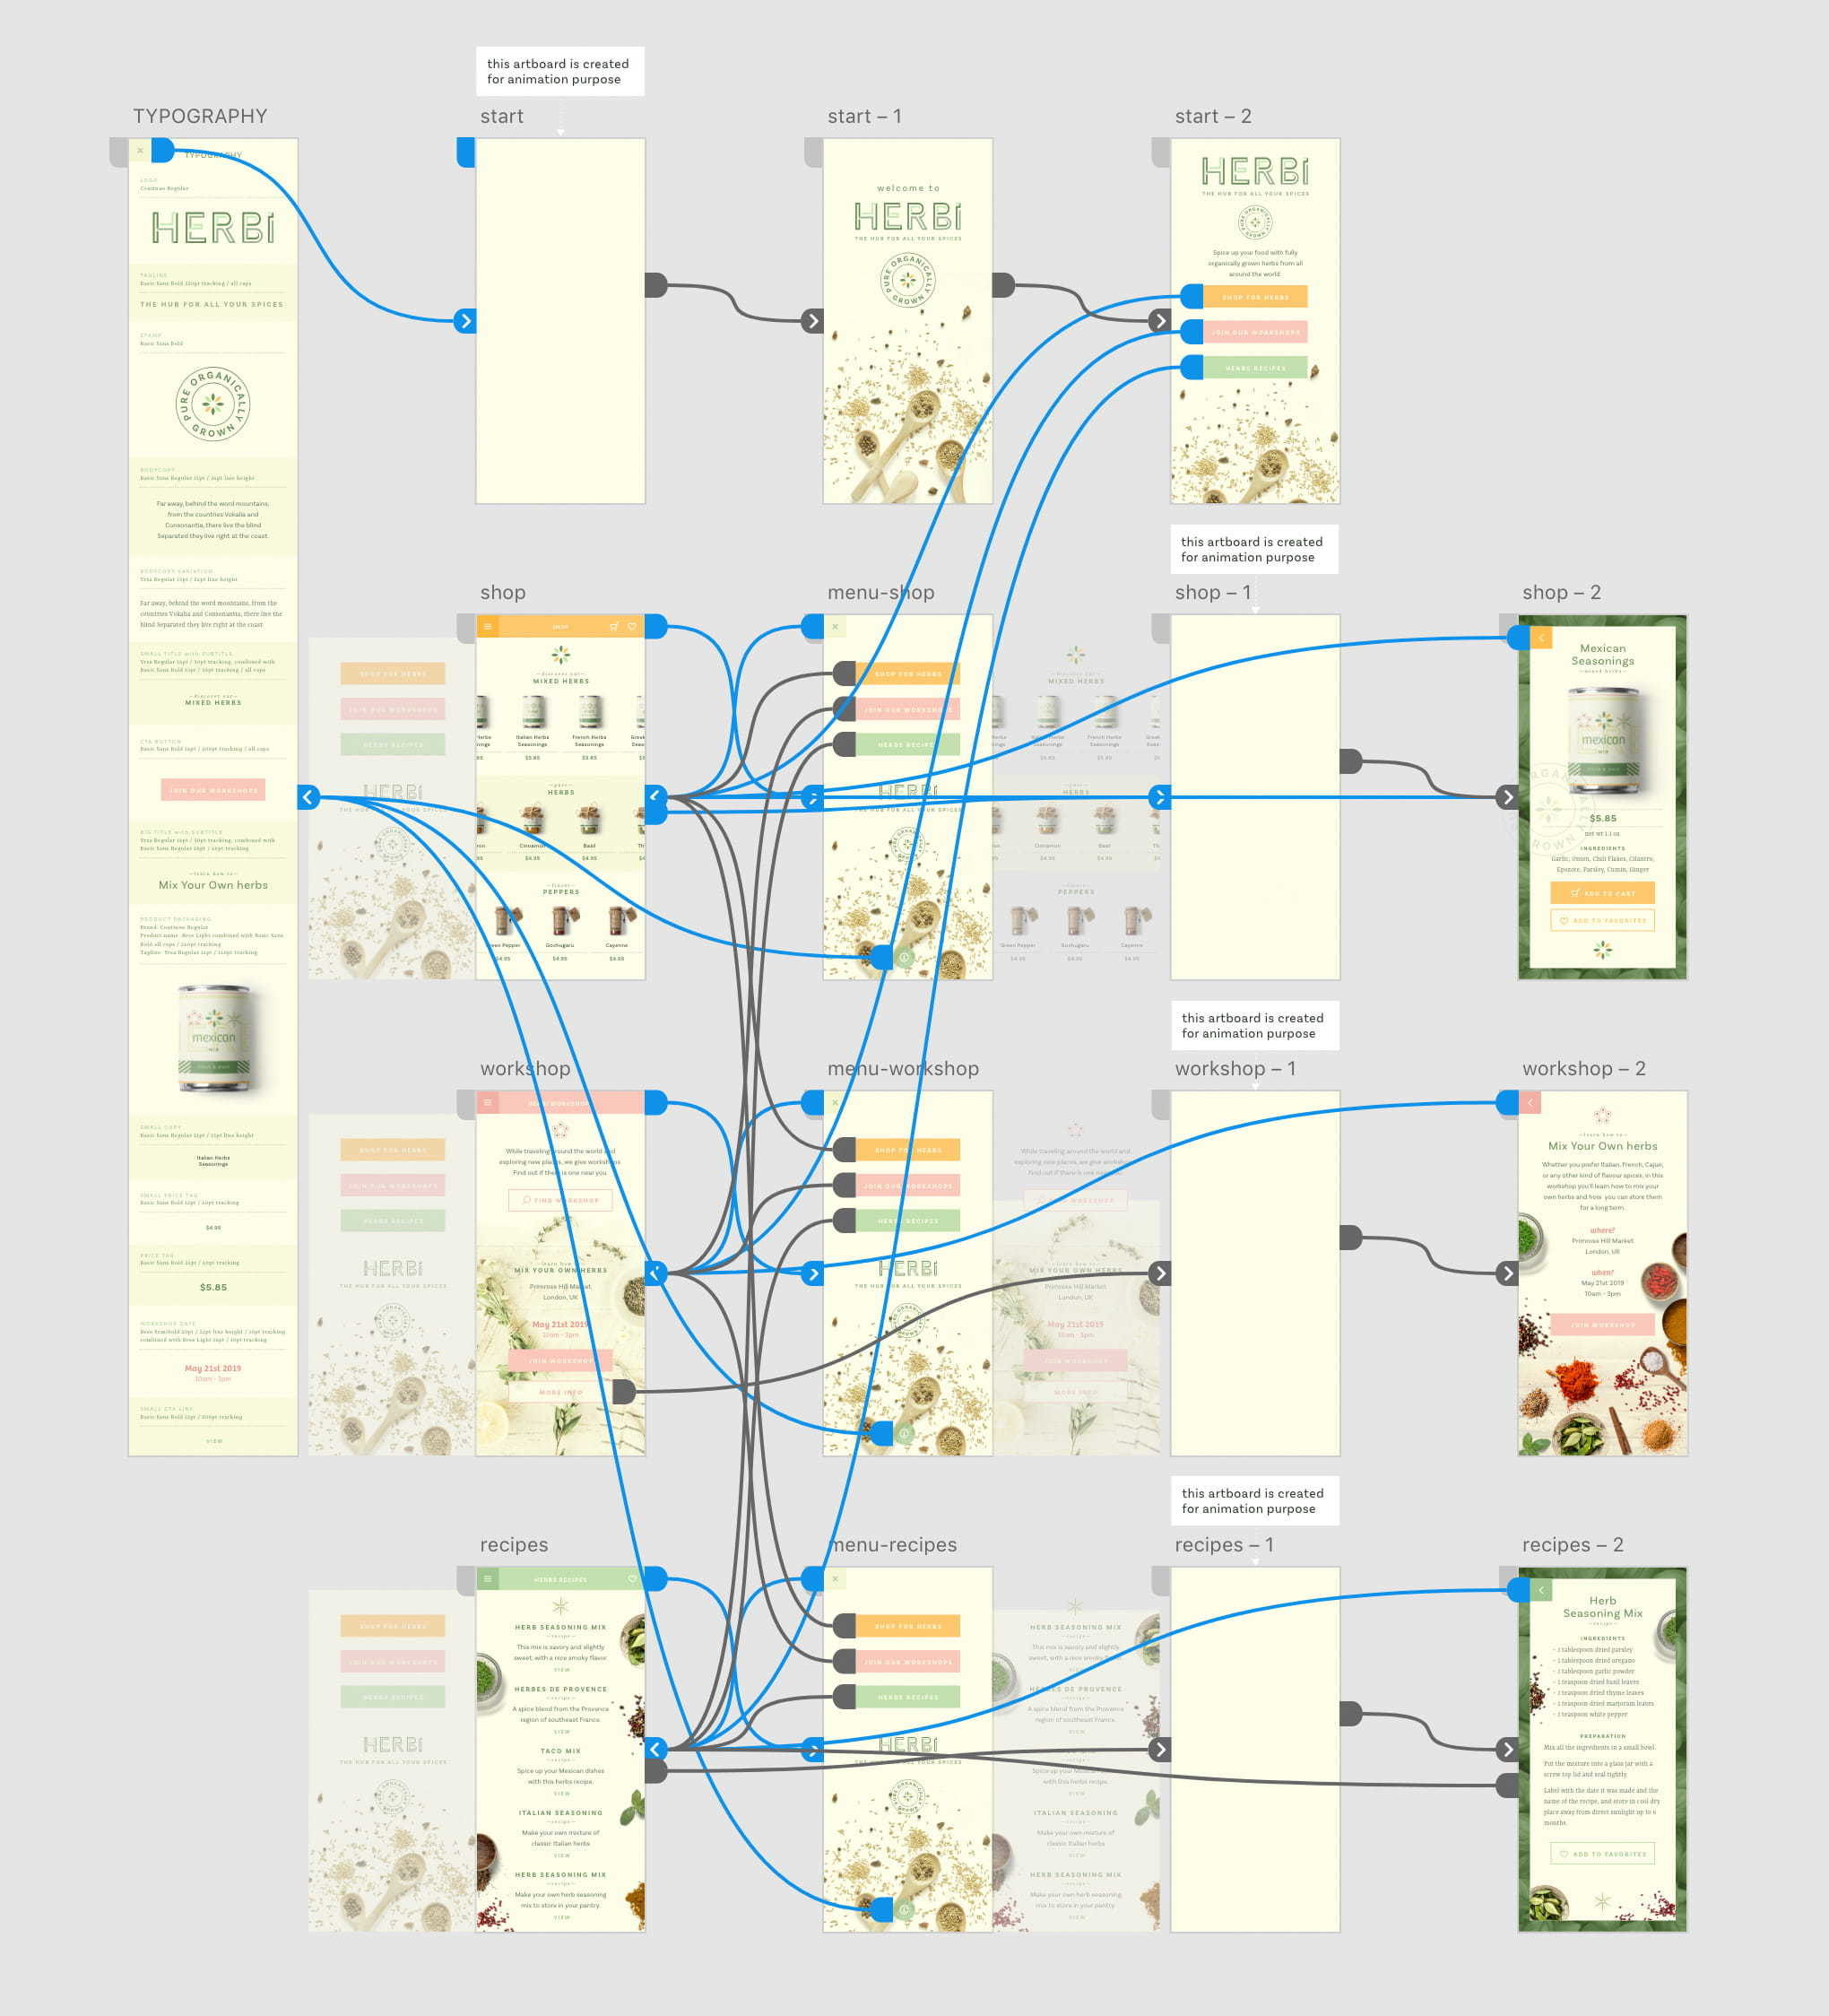 The Prototype view of the HERBi app in Adobe XD with all linked interactions shown